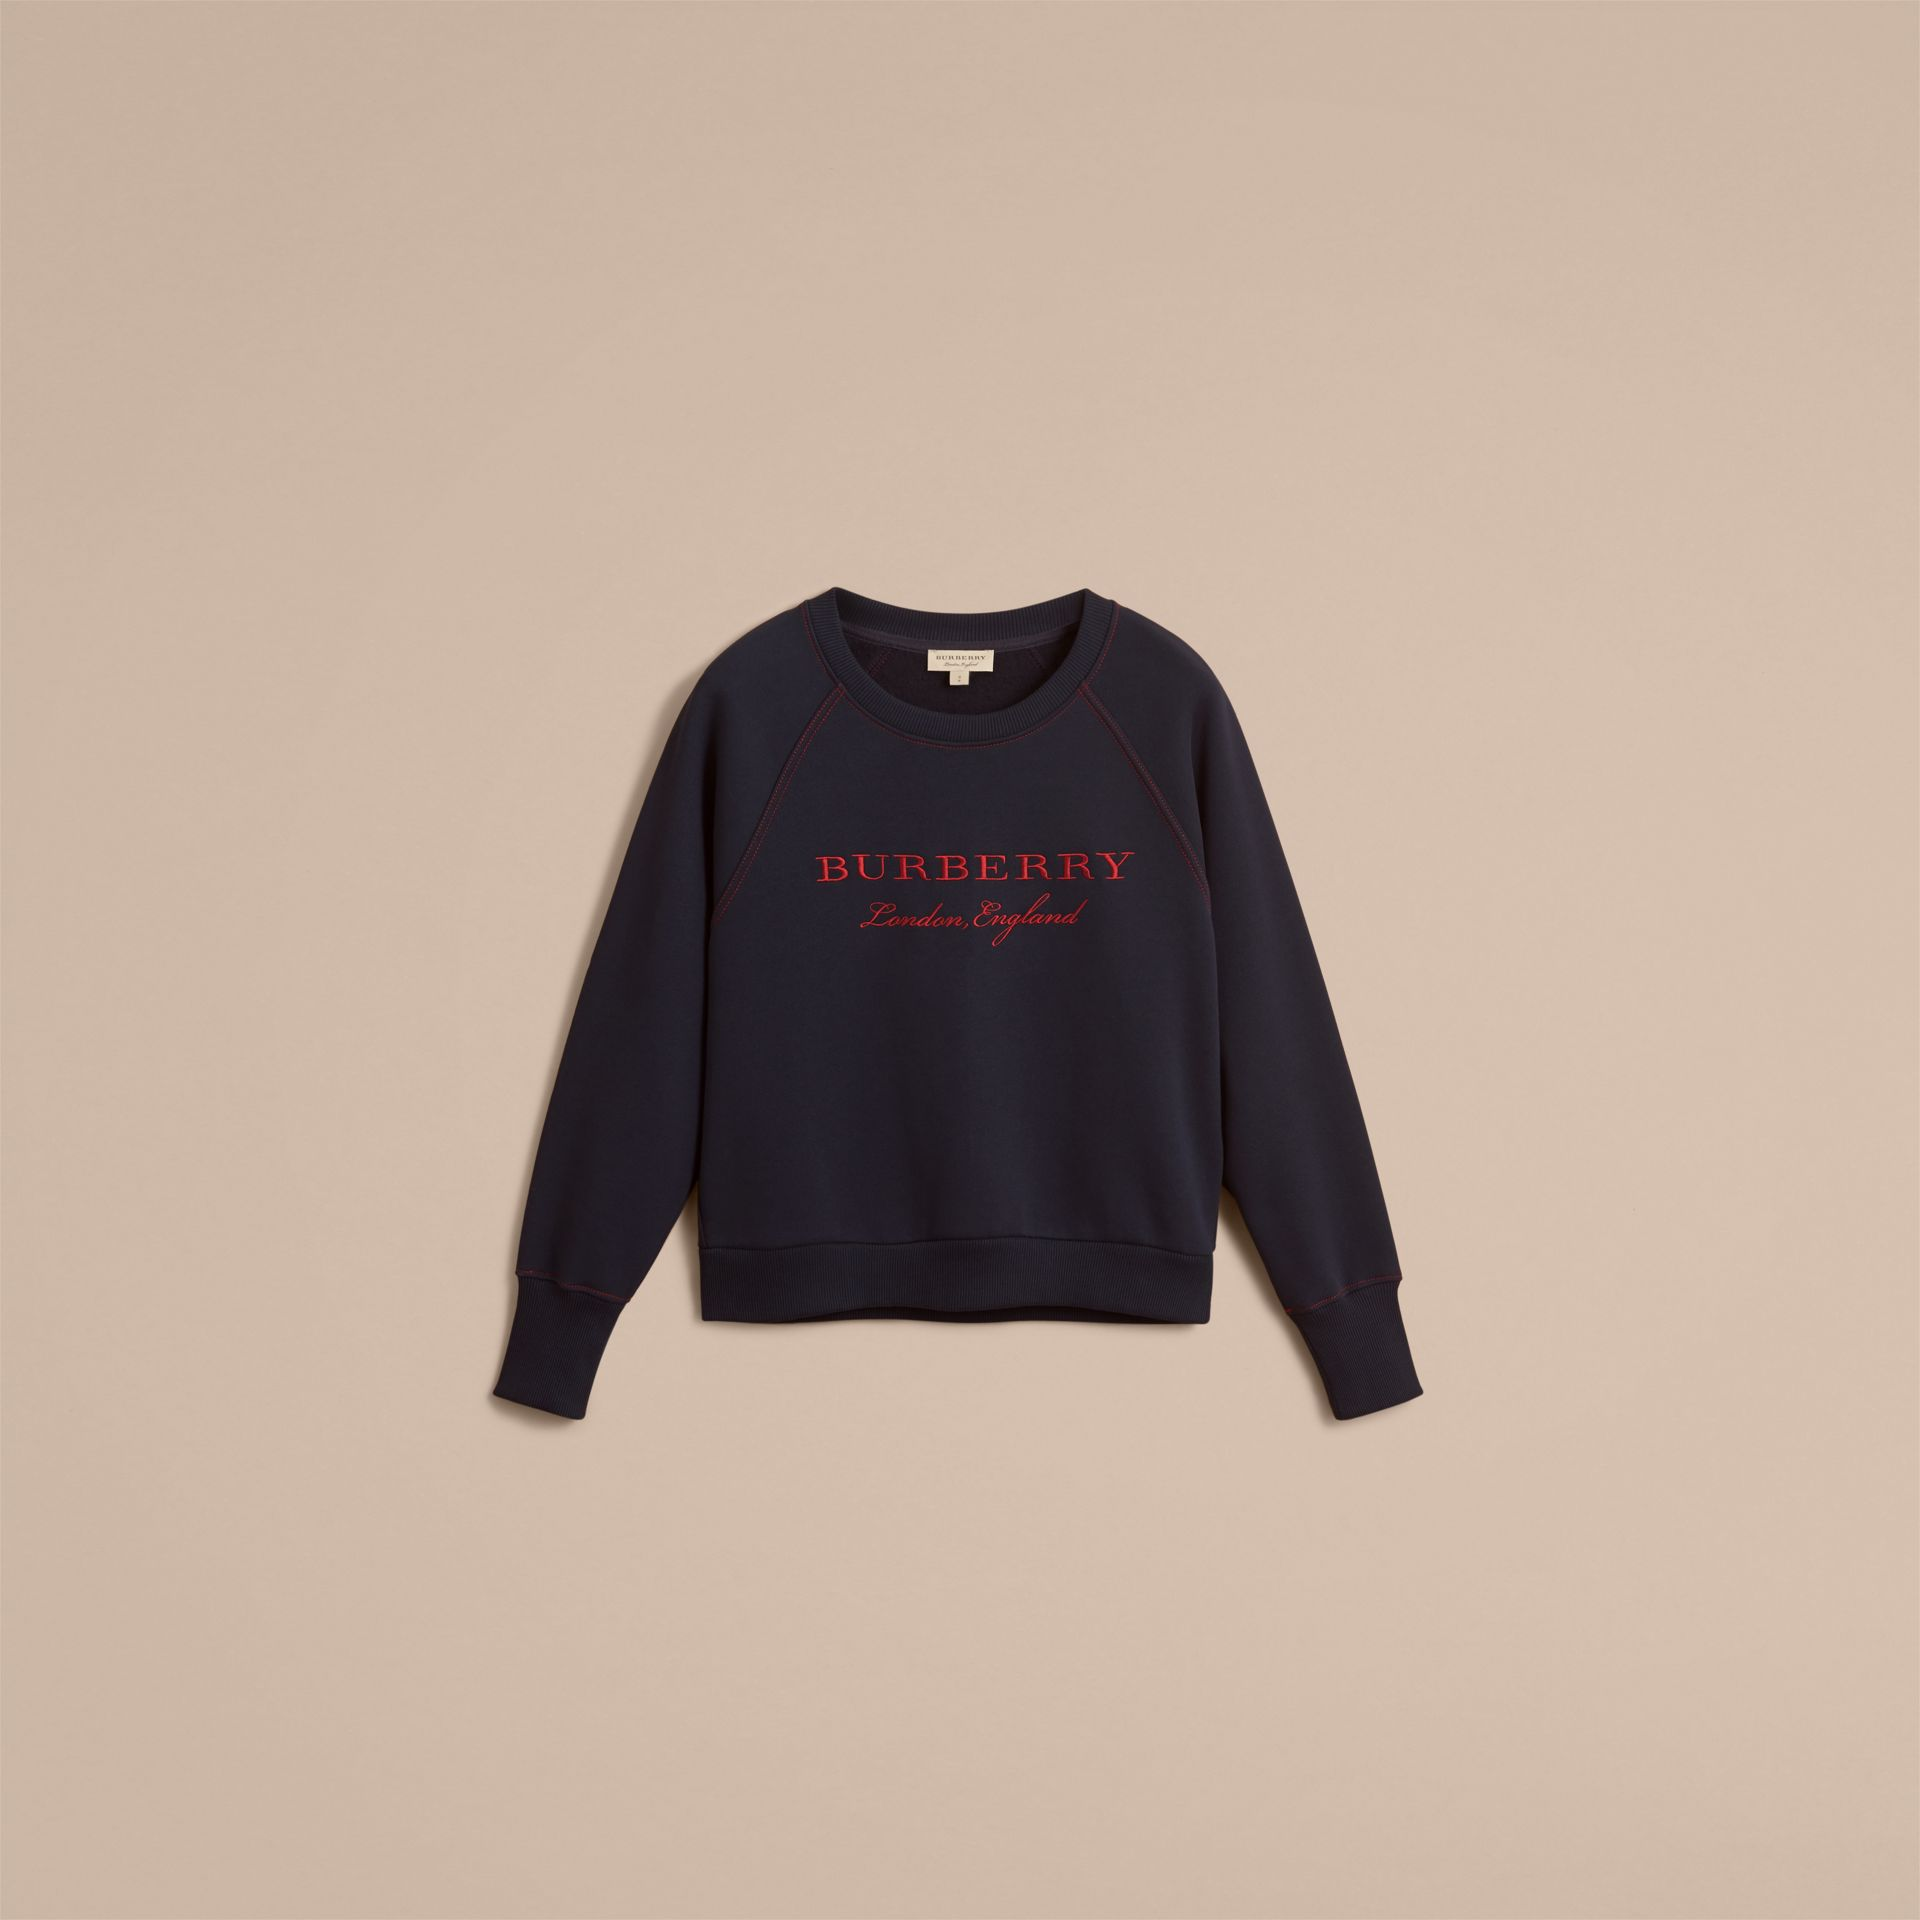 Embroidered Cotton Blend Jersey Sweatshirt in Navy - Women | Burberry Singapore - gallery image 4